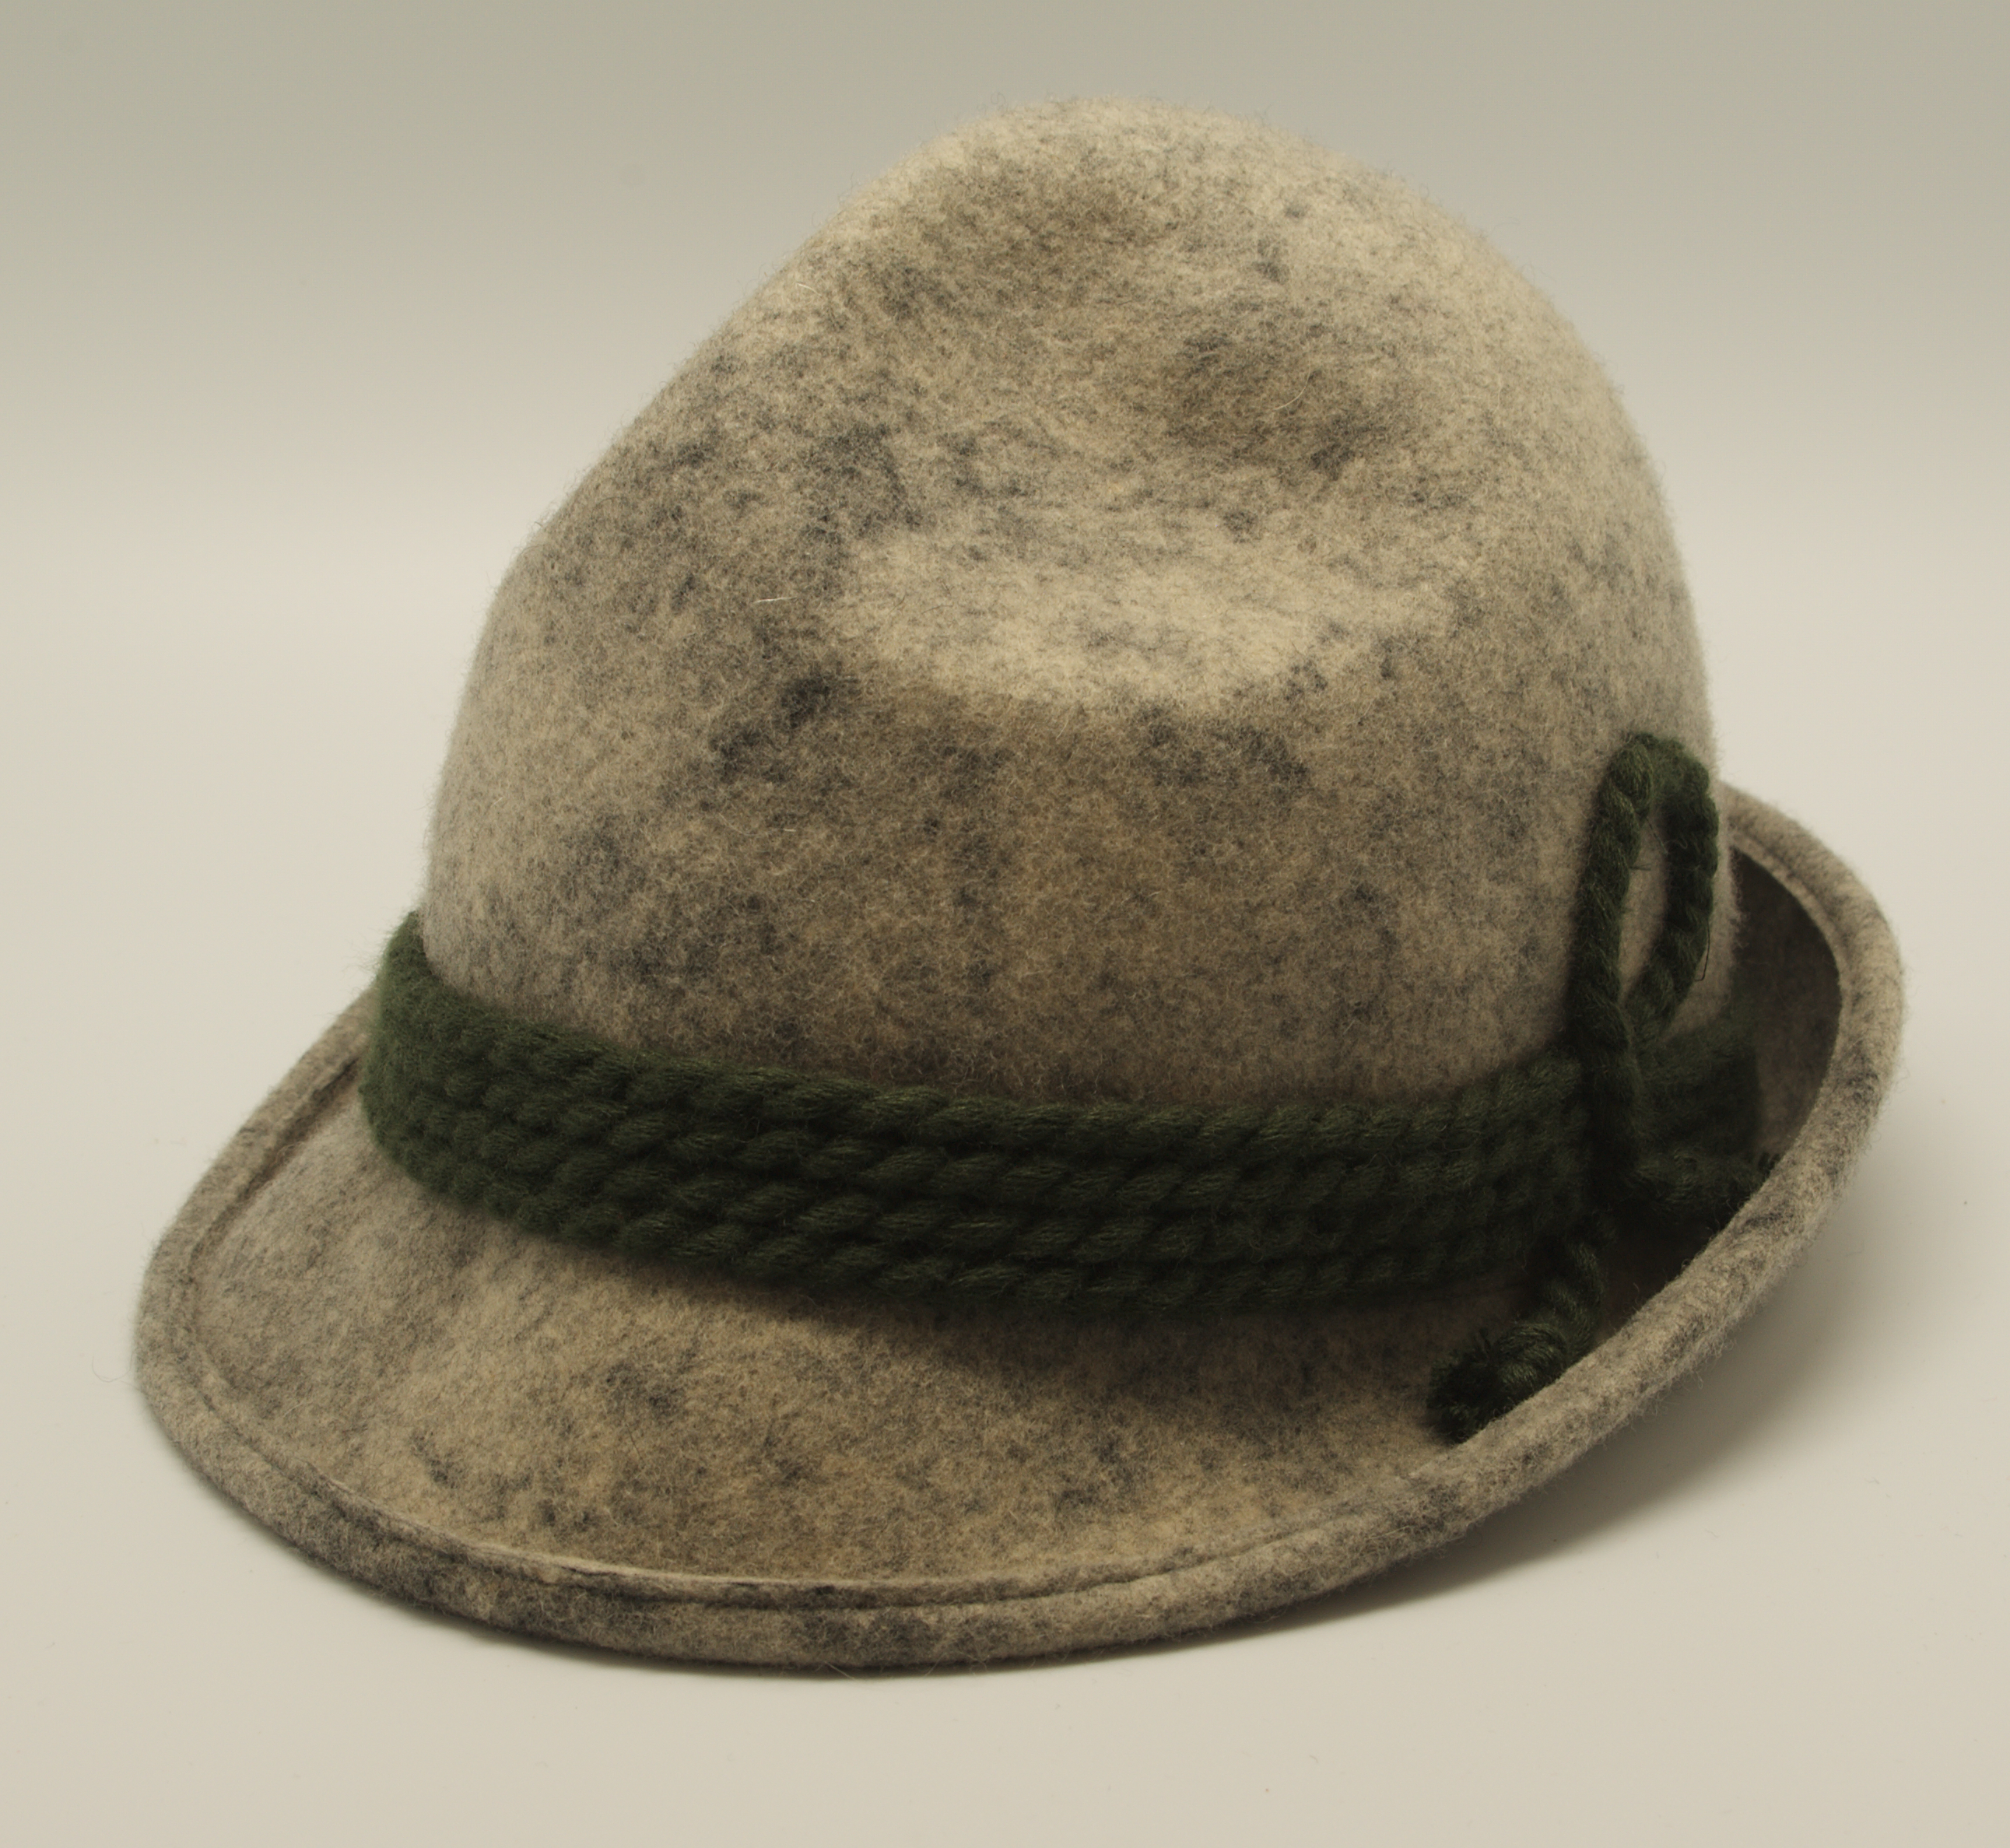 badfb21f7c6 Tyrolean hat - Wikipedia